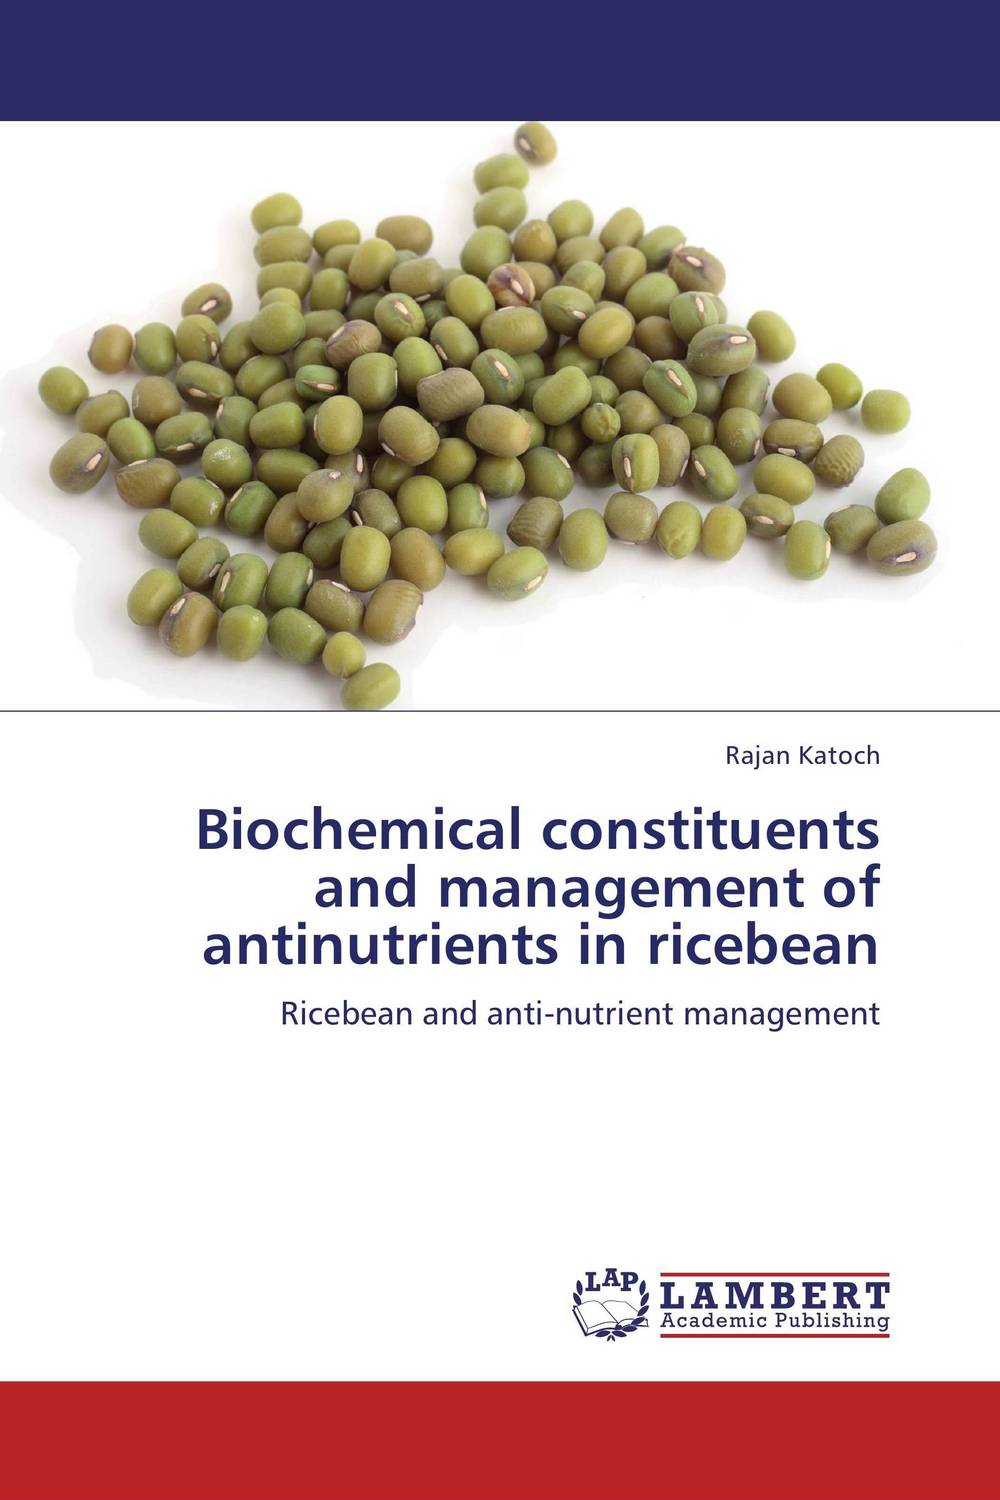 evaluation of mungbean with different genotypes essay 752_18 determination of anti-amylase and anti-glucosidase activity of different genotypes of and evaluation of of mungbean to different methods and.